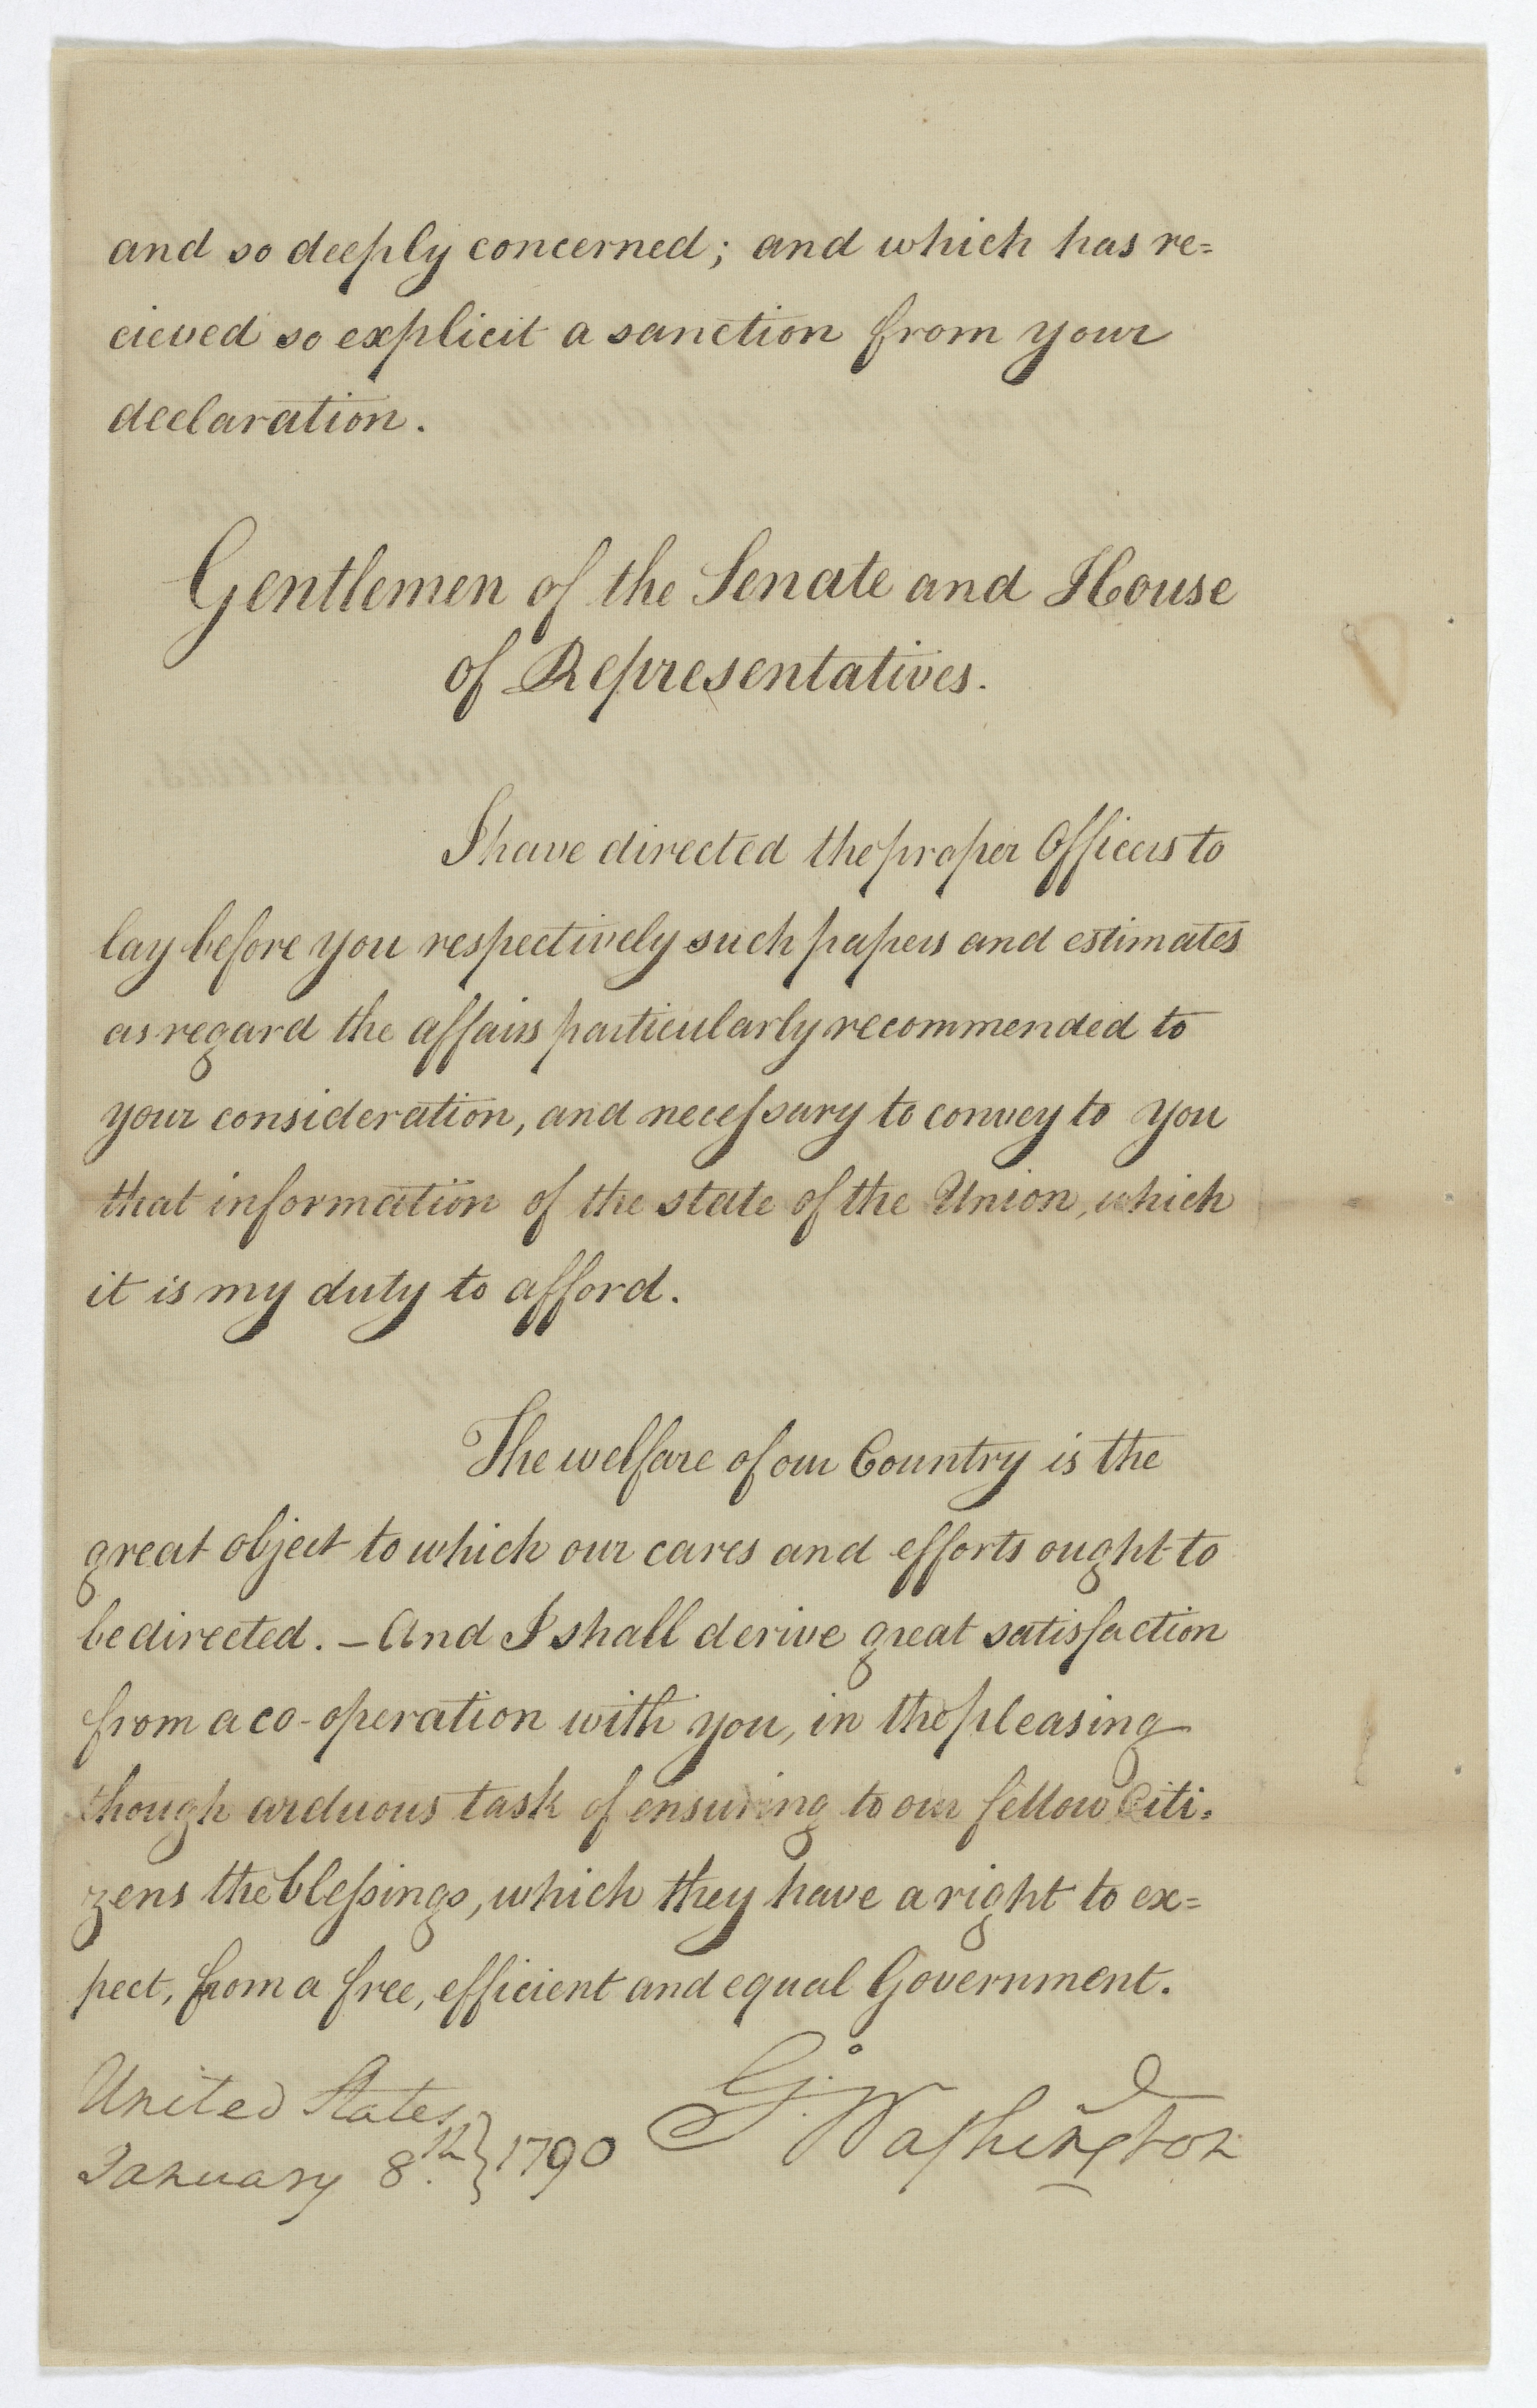 President George Washington's first Annual Message to Congress, January 8, 1790. (Records of the U.S. Senate. National Archives)